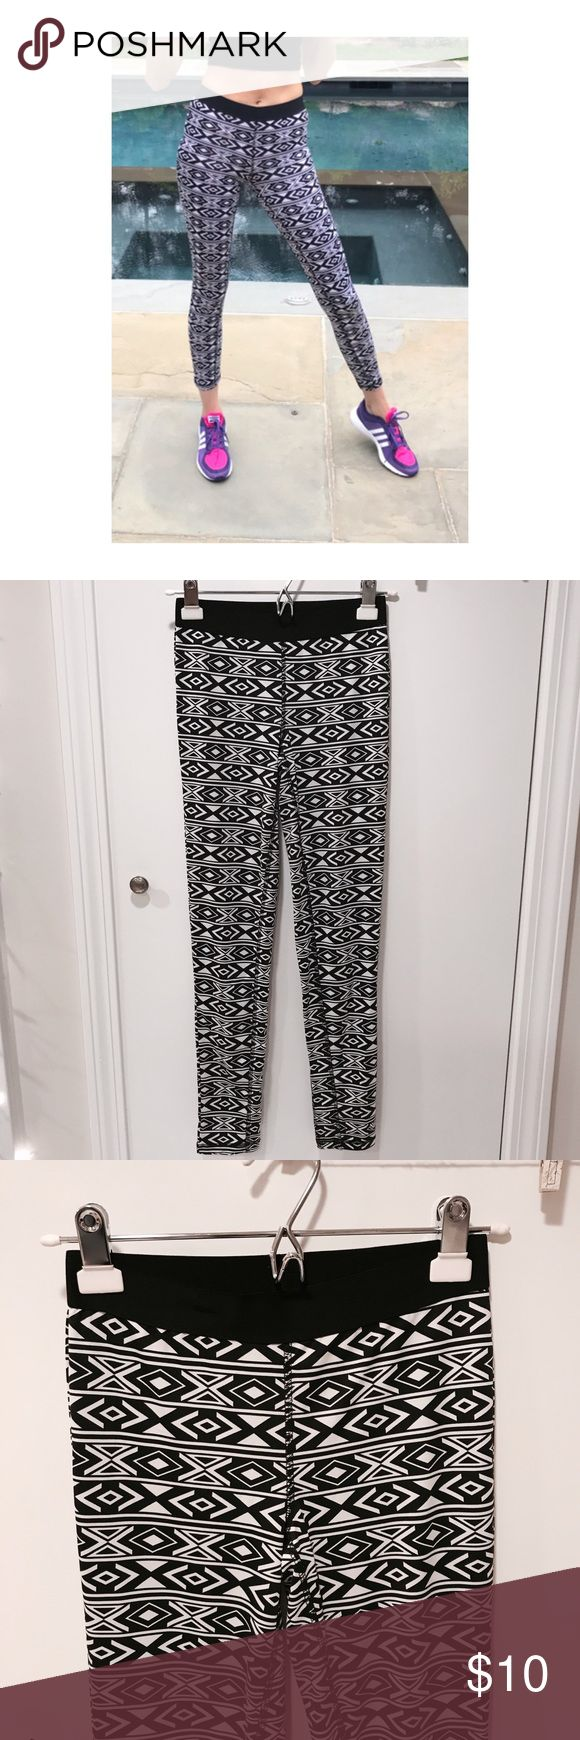 🆕 I N 🖤💙 F21  L E G G I N G S Aztec Black White Forever 21 • Aztec pattern • Black & White • Active / Sport / Gym • Leggings • size S • nice fit • gently worn • great condition • bundle and save 💙 Forever 21 Pants Leggings